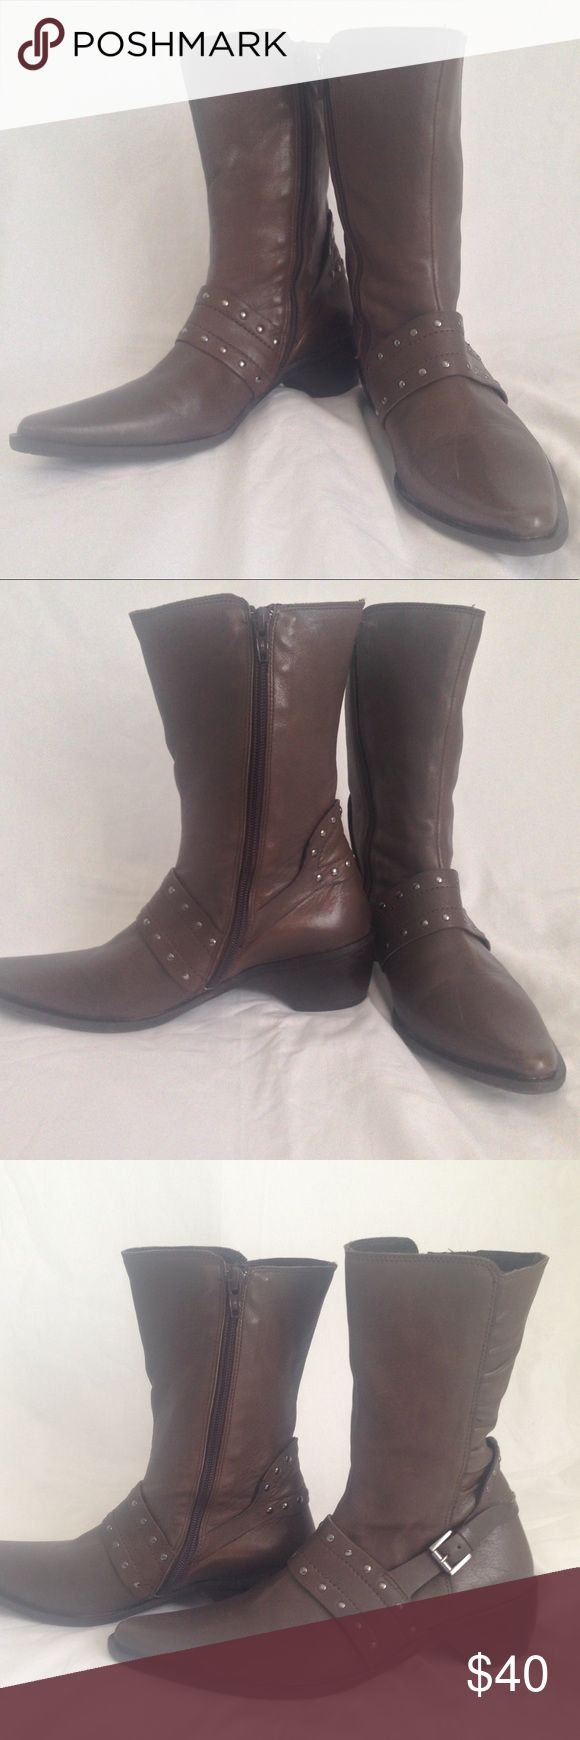 "FIDJI leather mid calf boots FIDJI leather mid calf boots, beautiful taupe color. Very soft upper leather and lining, rubber soles. made in Portugal. About 1.75"" heel, 8"" shaft. Excellent condition FIDJI Shoes Combat & Moto Boots"